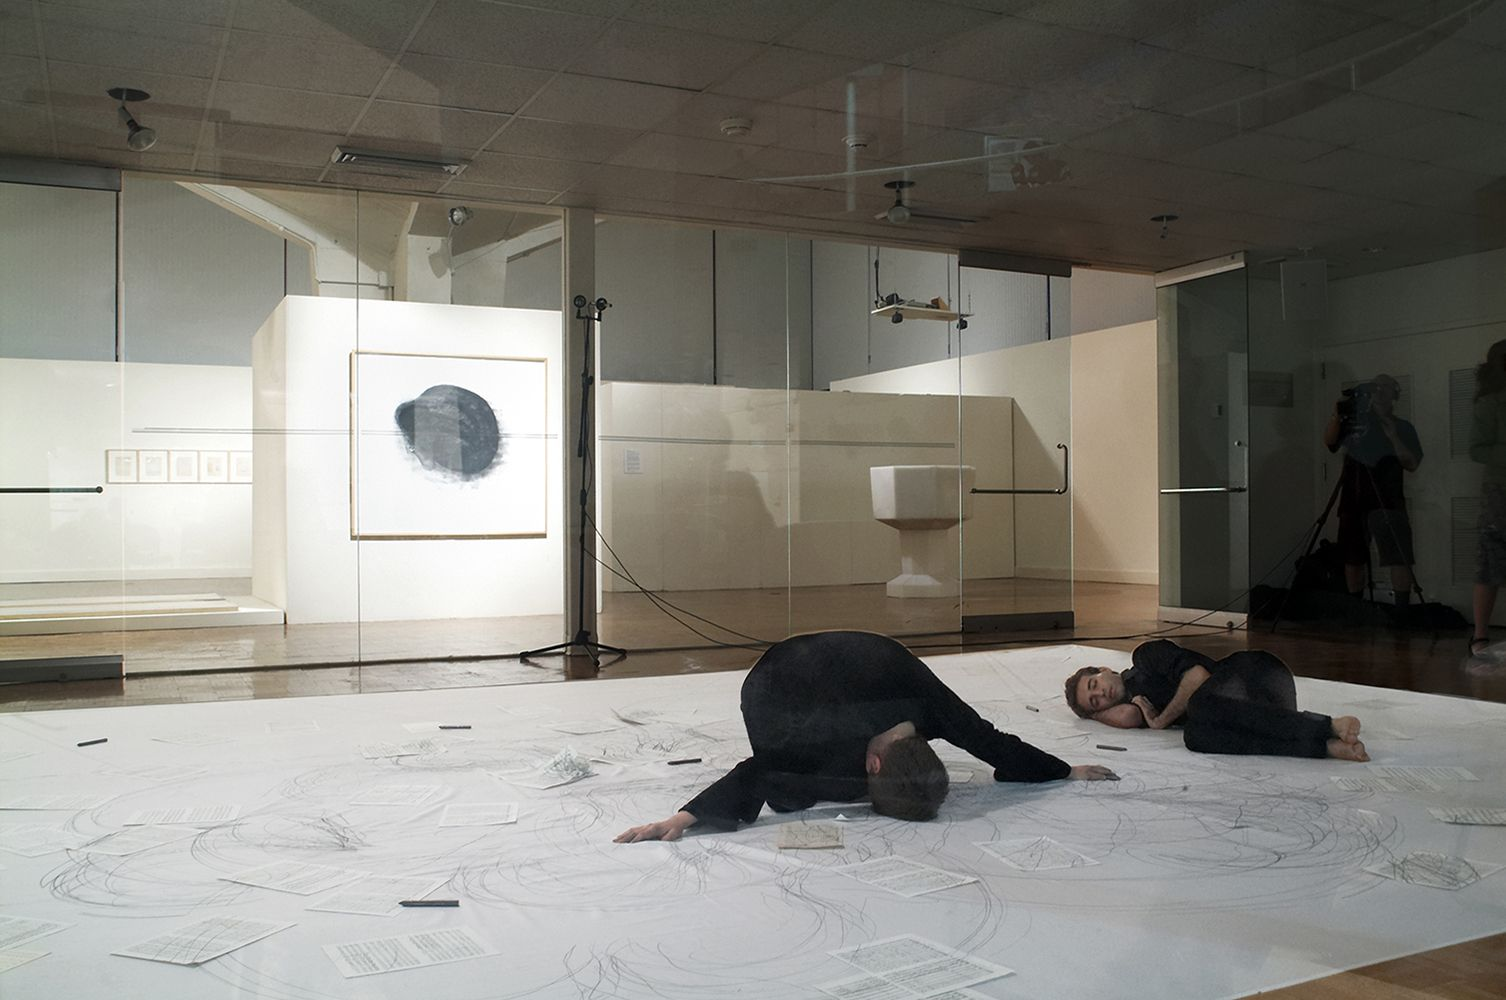 Monika Weiss: Five Rivers: Installation, drawing, performance, video and sound (survey exhibition)